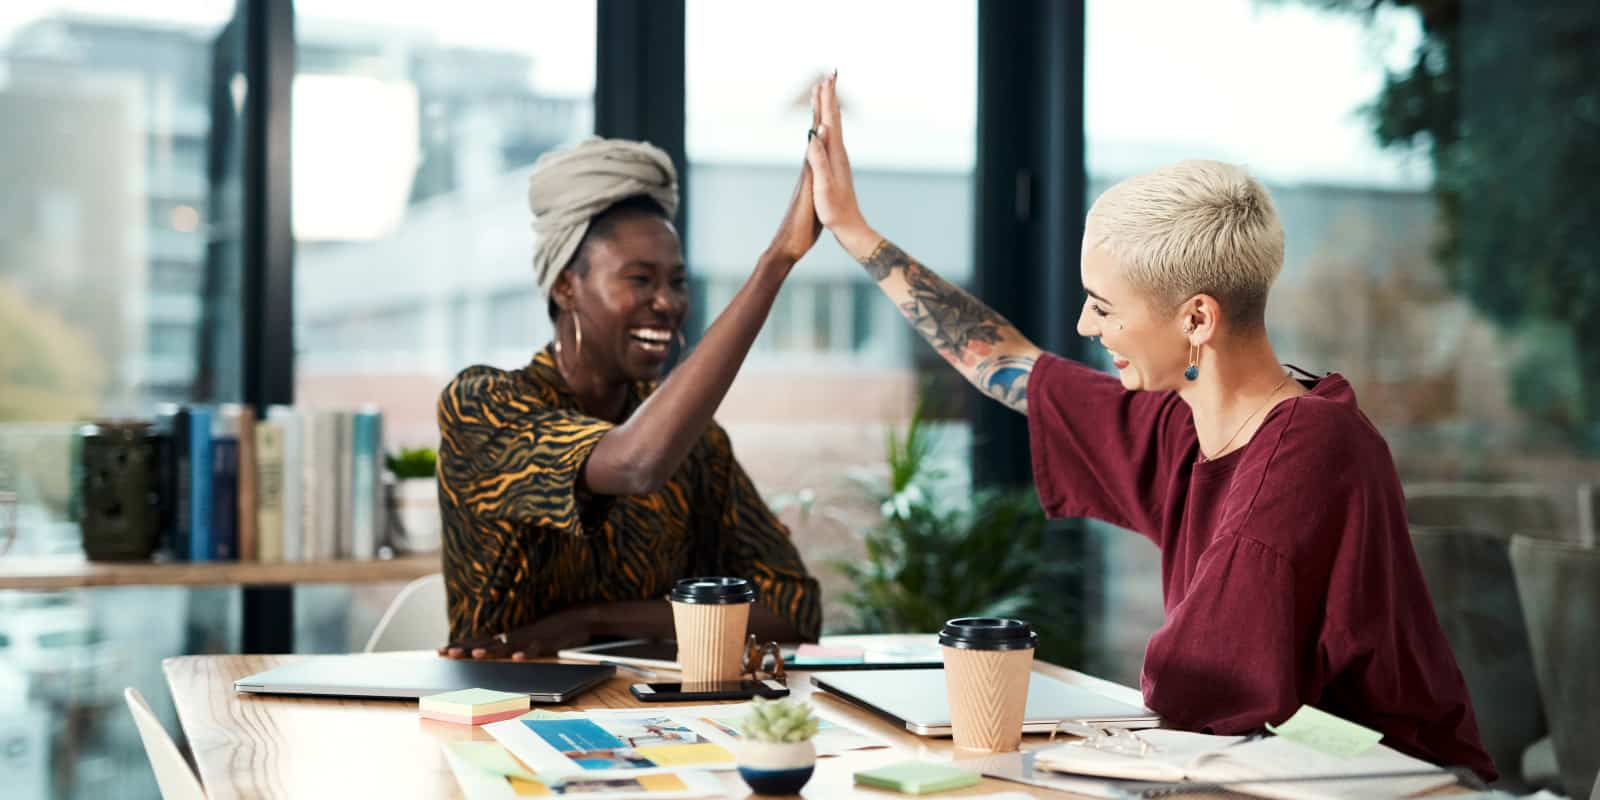 Two women high fiving next to coffee cups and paper on a table